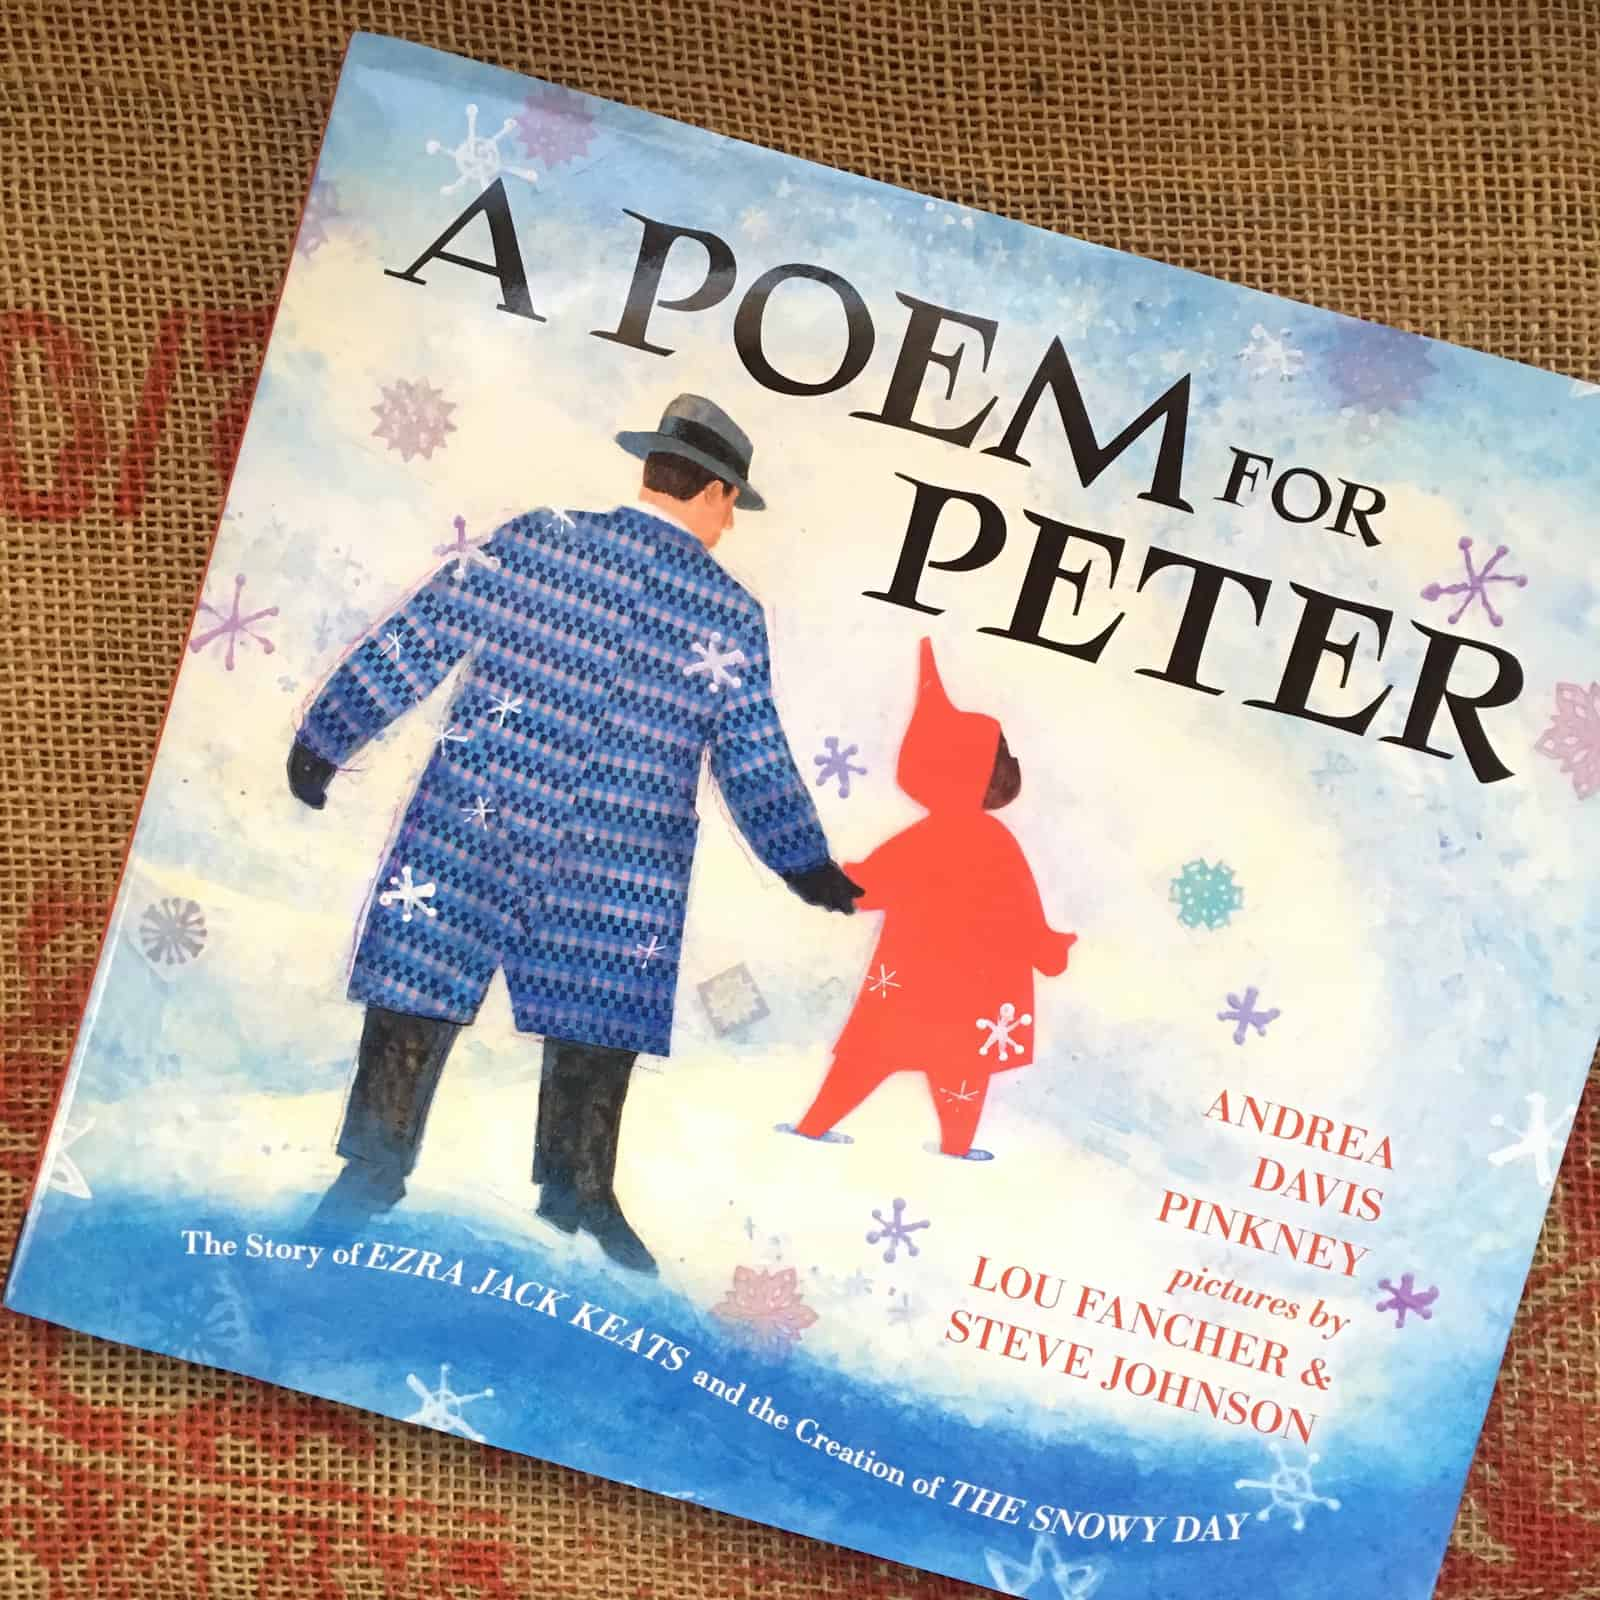 A Poem for Peter and a Dream from King | Be Small Studios